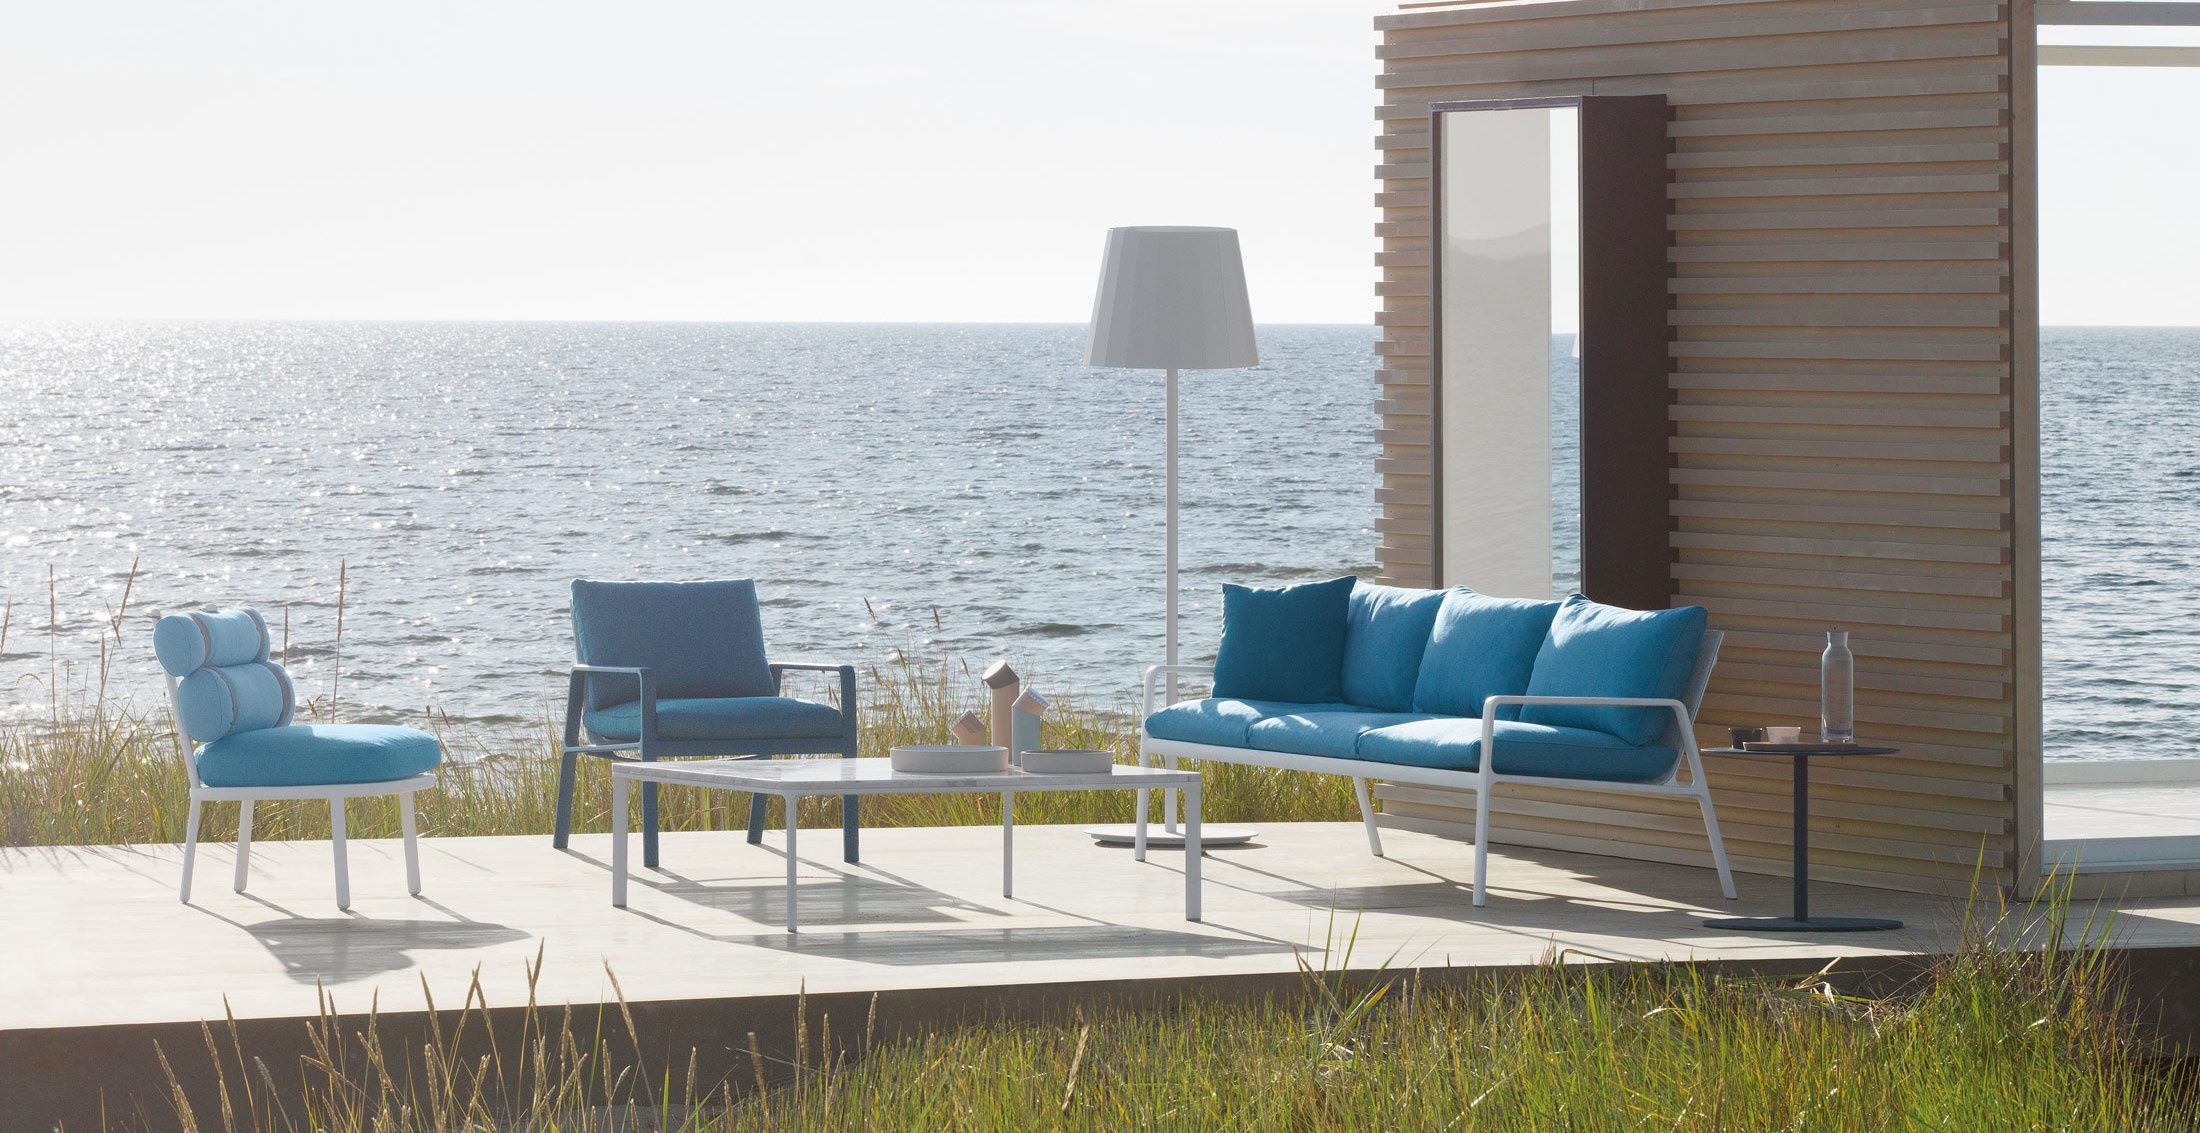 Kettal Mallorca  Muebles Kettal  Palma  The Why Factory